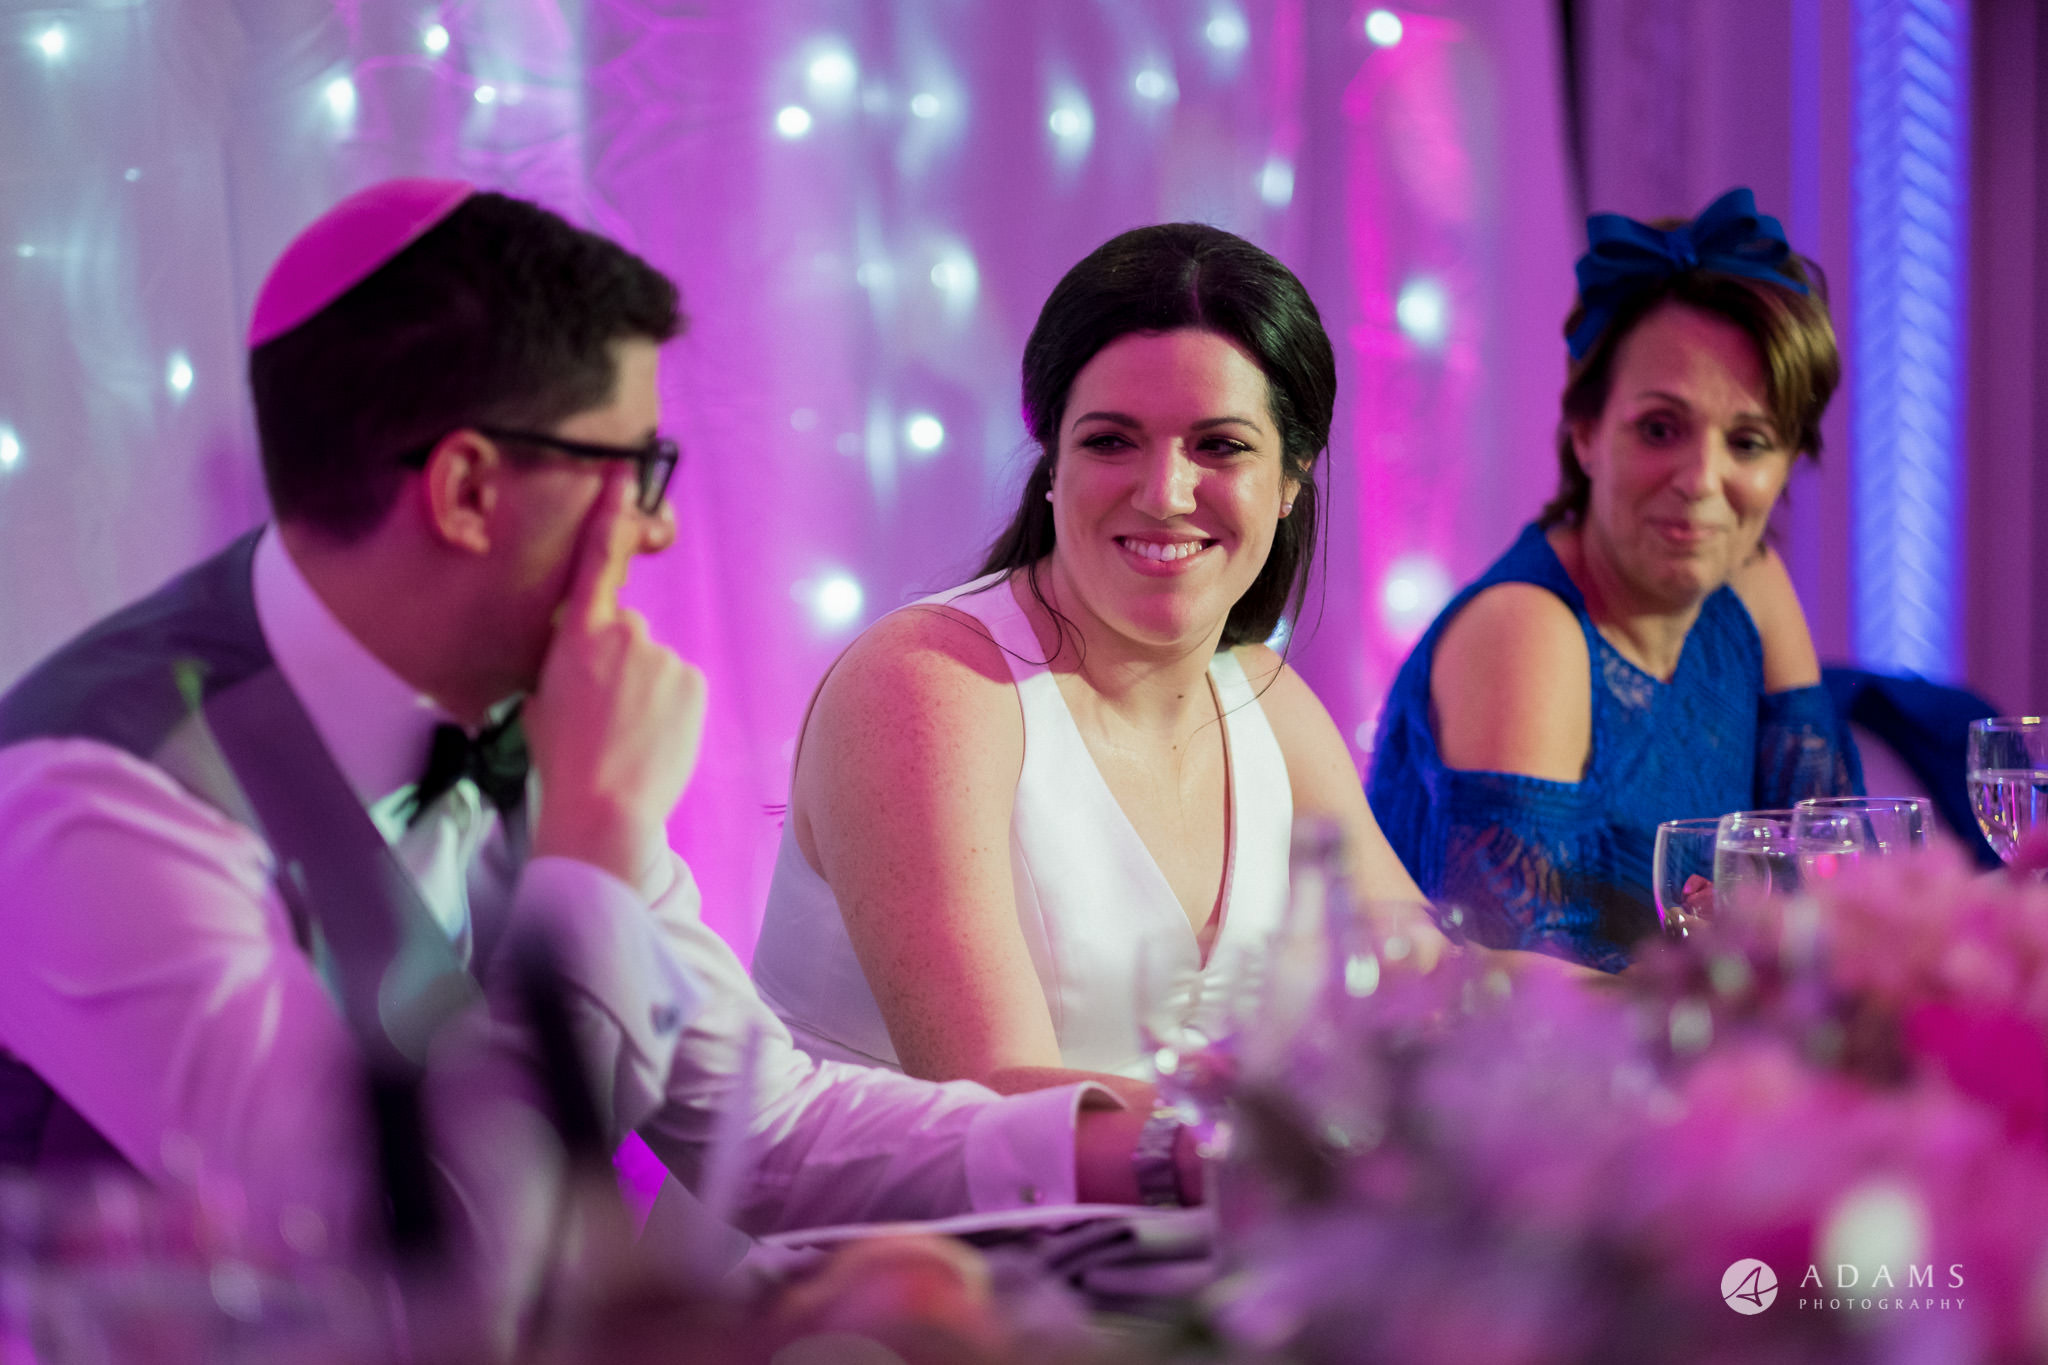 De Vere grand connaught rooms photographer bride looks at the groom